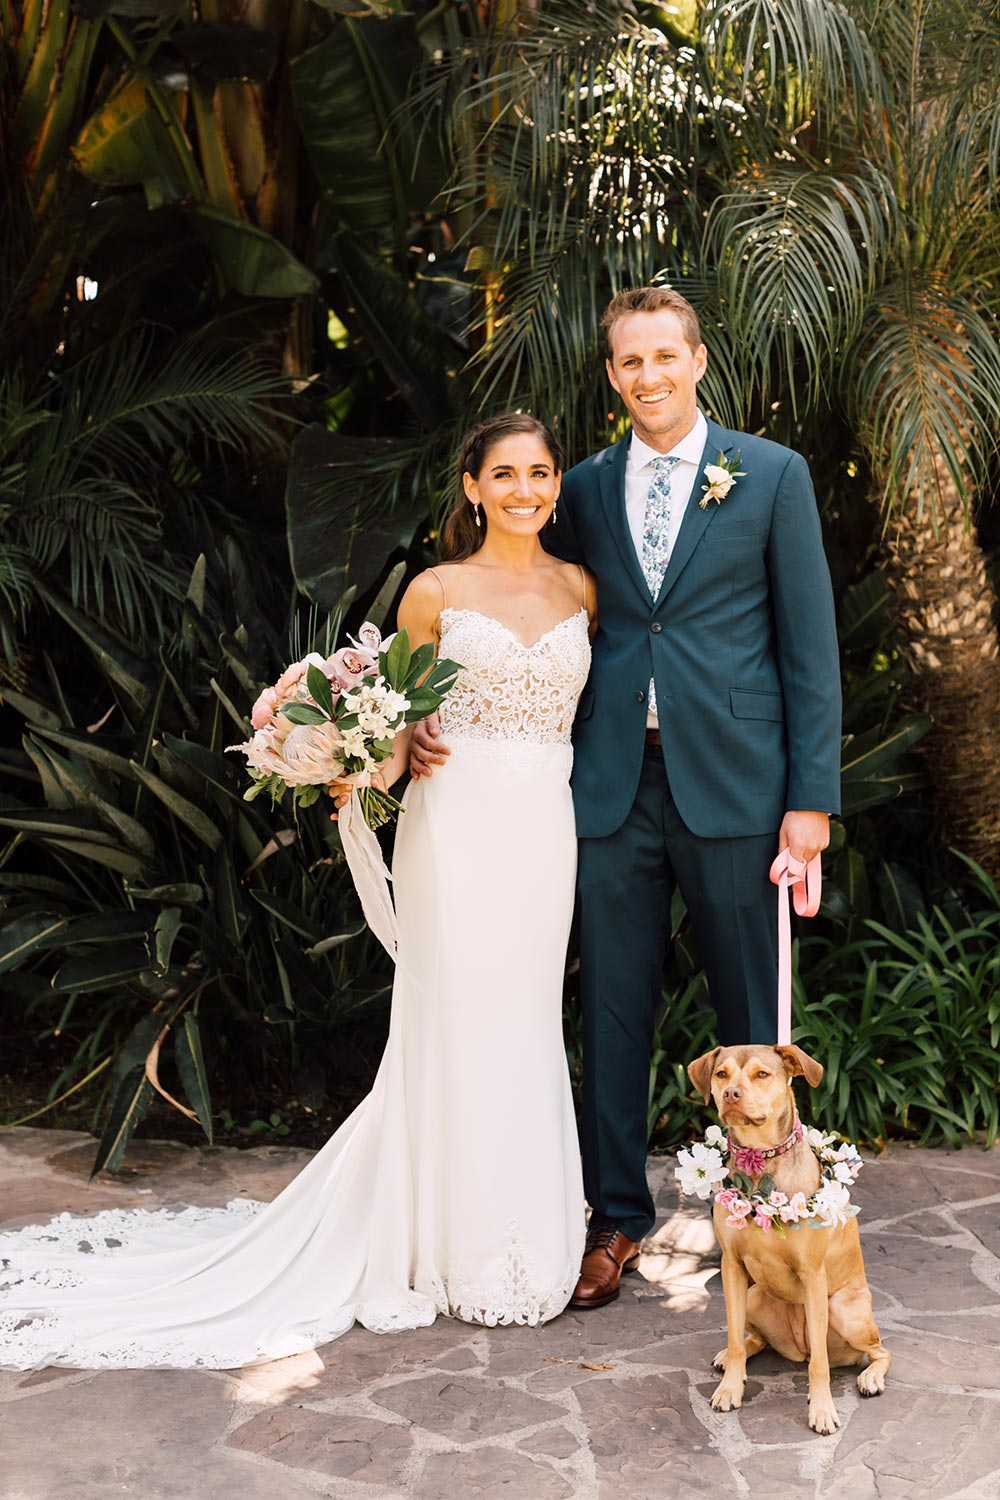 embroidered spaghetti strap wedding dress with navy groom suit and printed floral tie with dog of honor